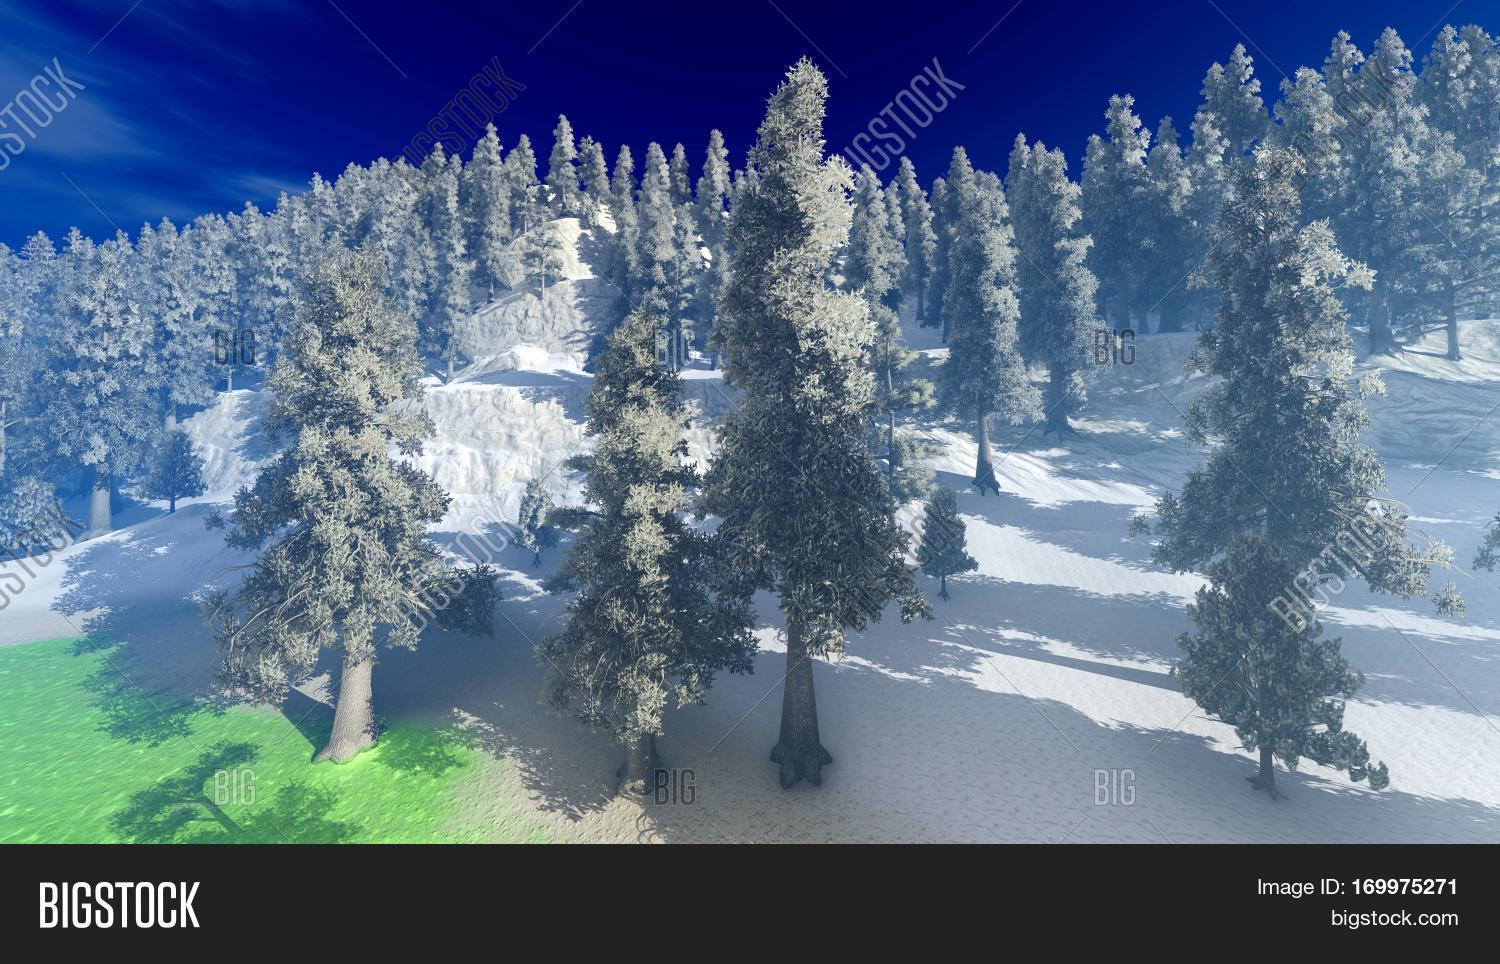 3d rendering,aerea,aerial,america,arial,big,canada,canopy,centre,christmas,colors,conifers,december,drone,environment,fall,forest,green,habitat,high,jungle,lakes,landscape,leaves,mountains,natural,nature,north,photography,pines,plants,rocky,russia,scenic,season,snow,taiga,top,trees,view,wilderness